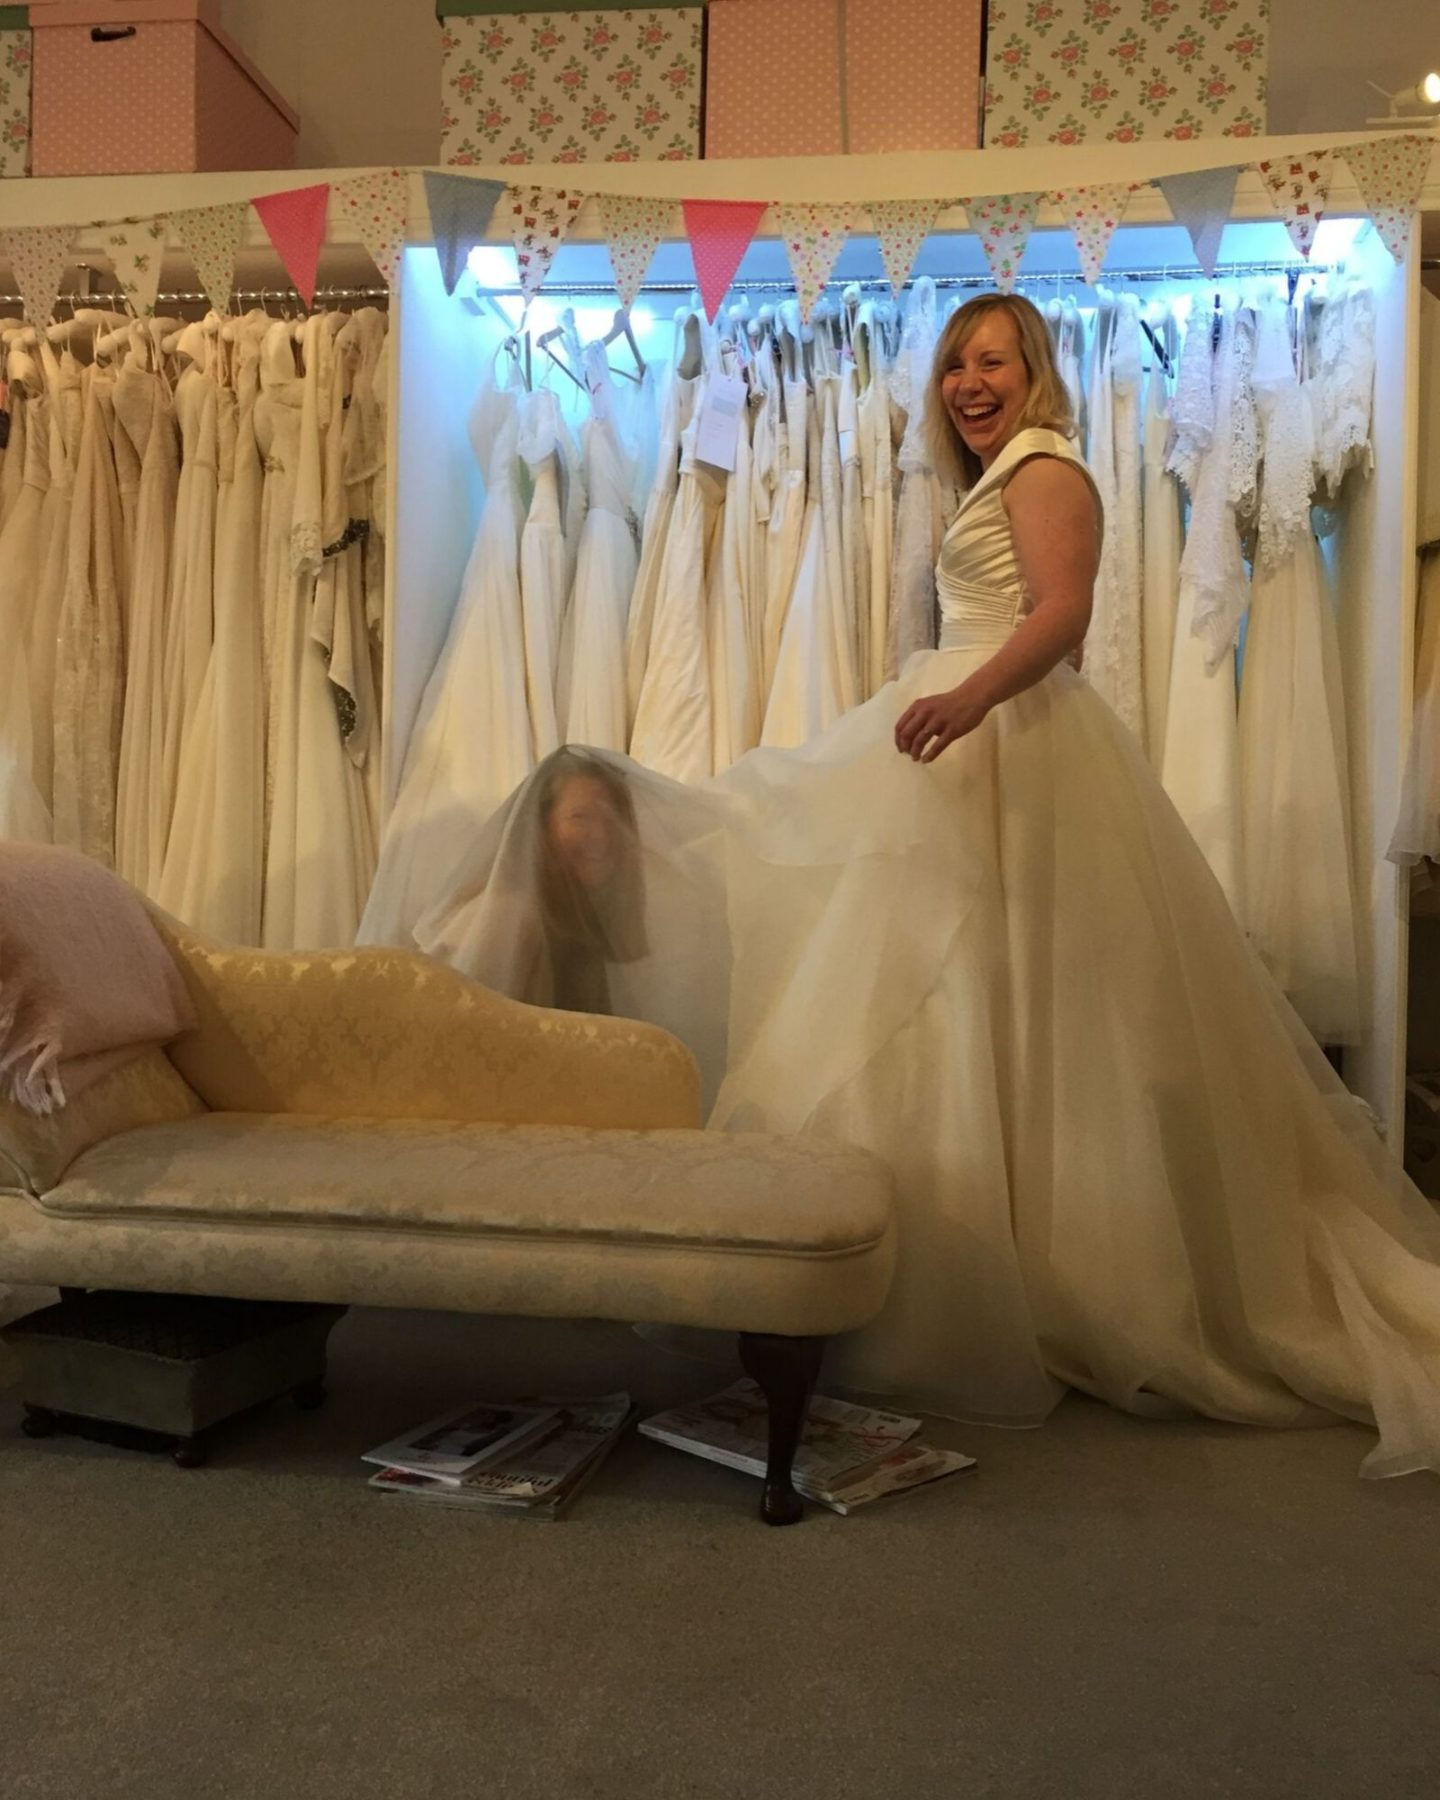 Boho Bride Boutique's Creative Director doing a bridal fitting